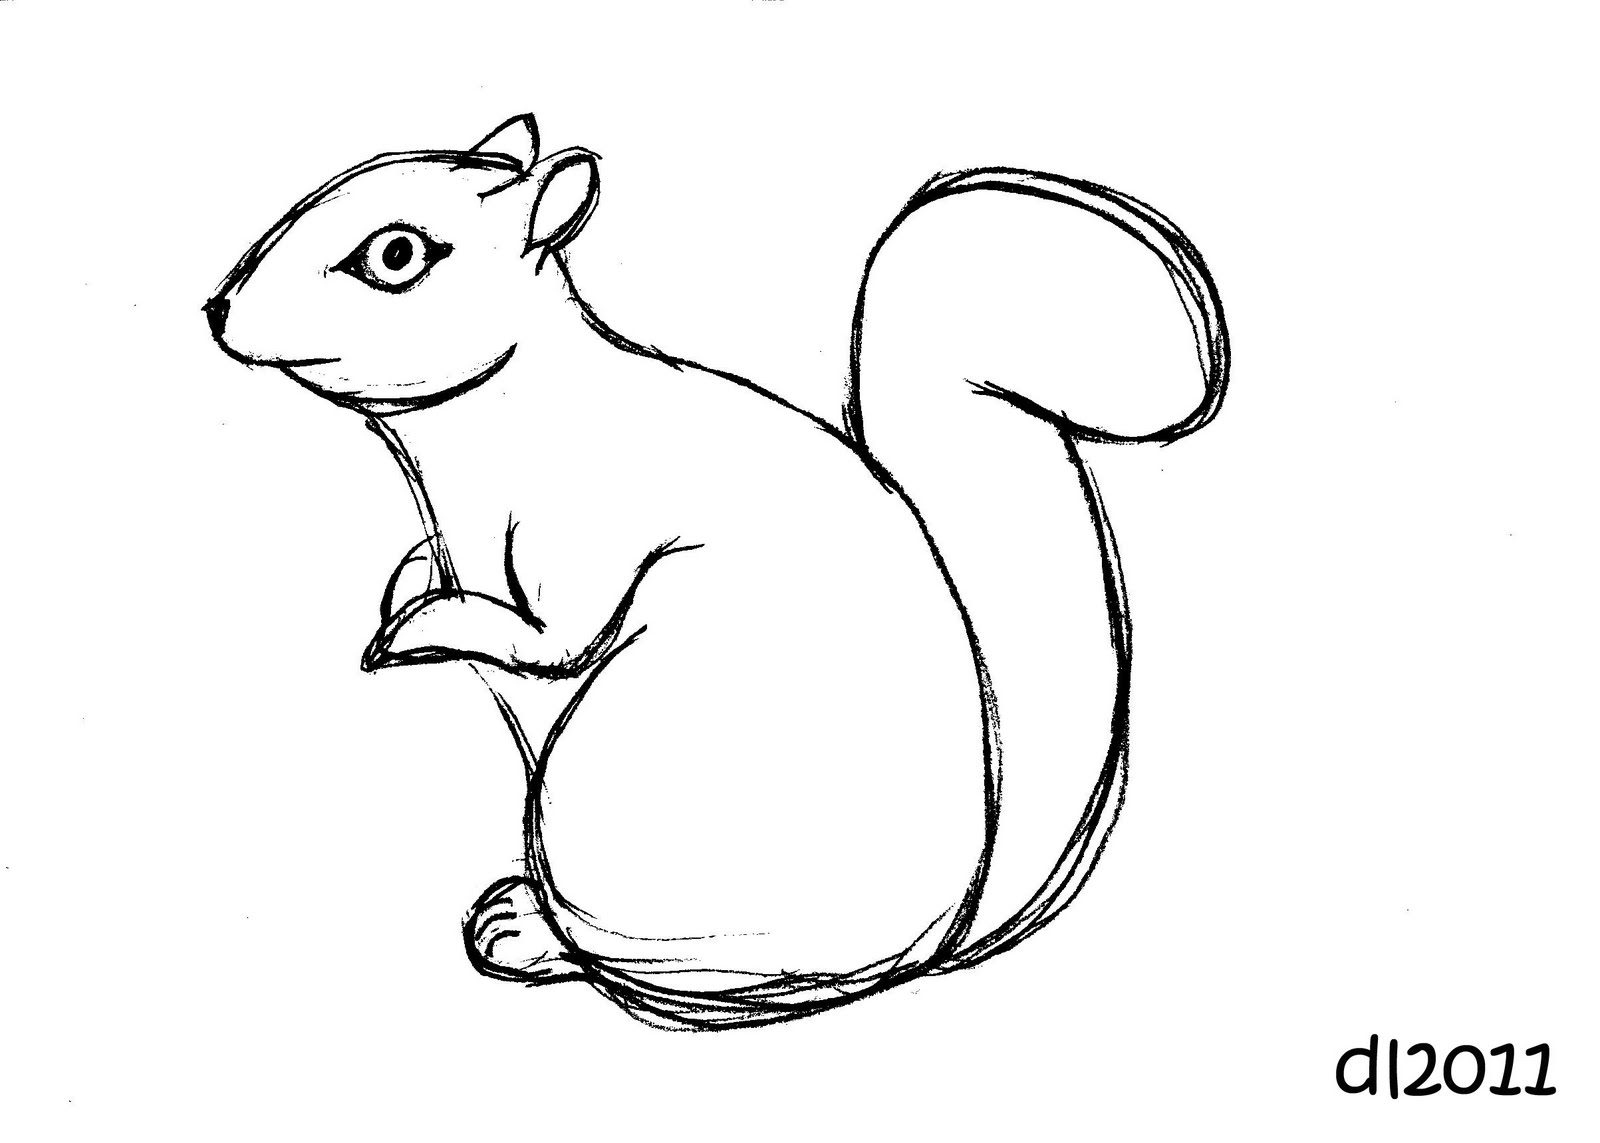 Drawn rodent pc mouse Drawing Panda squirrel%20drawing Squirrel Free